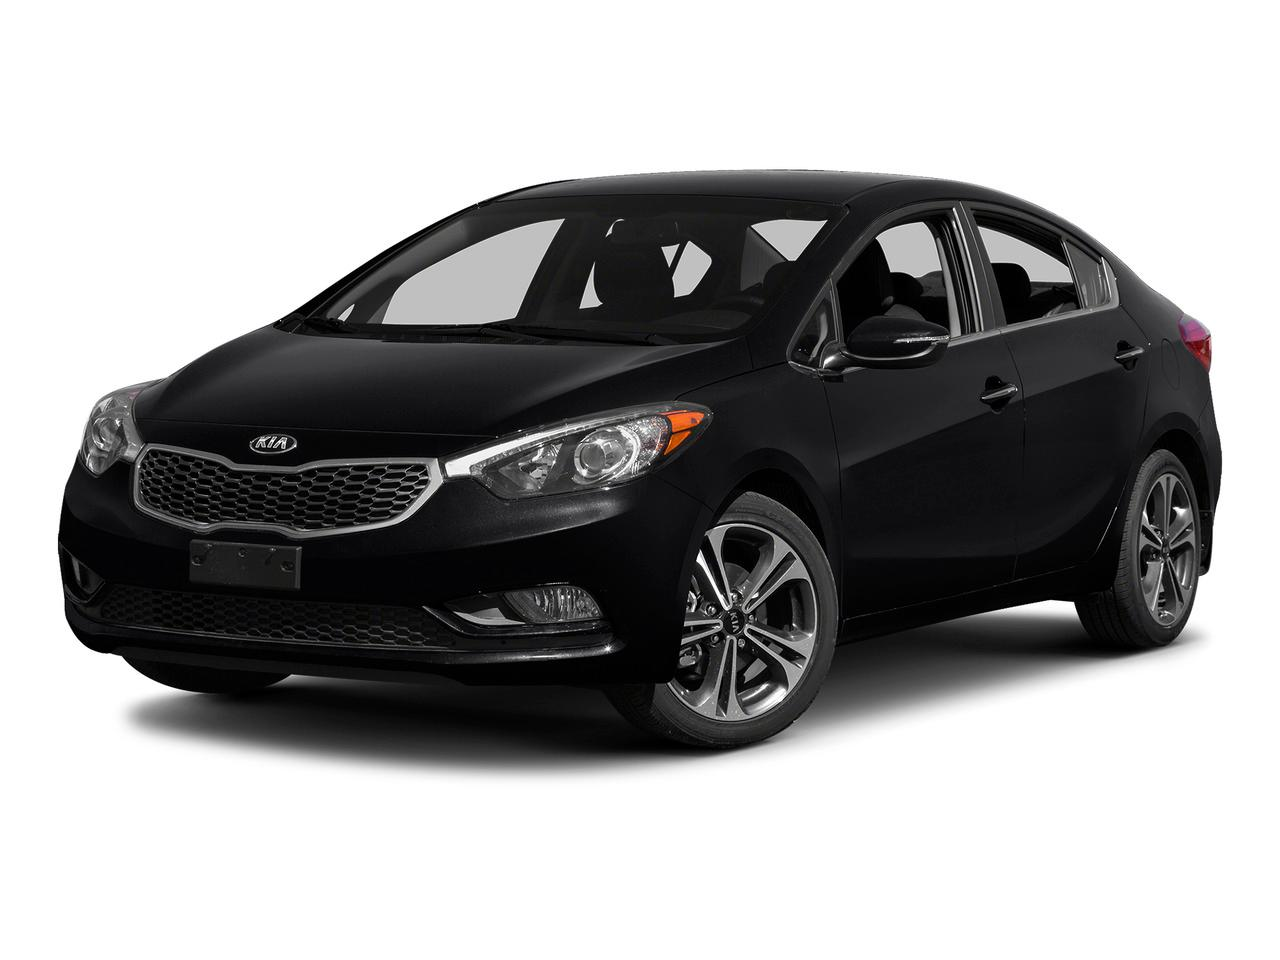 2015 Kia Forte Vehicle Photo in MERRIAM, KS 66202